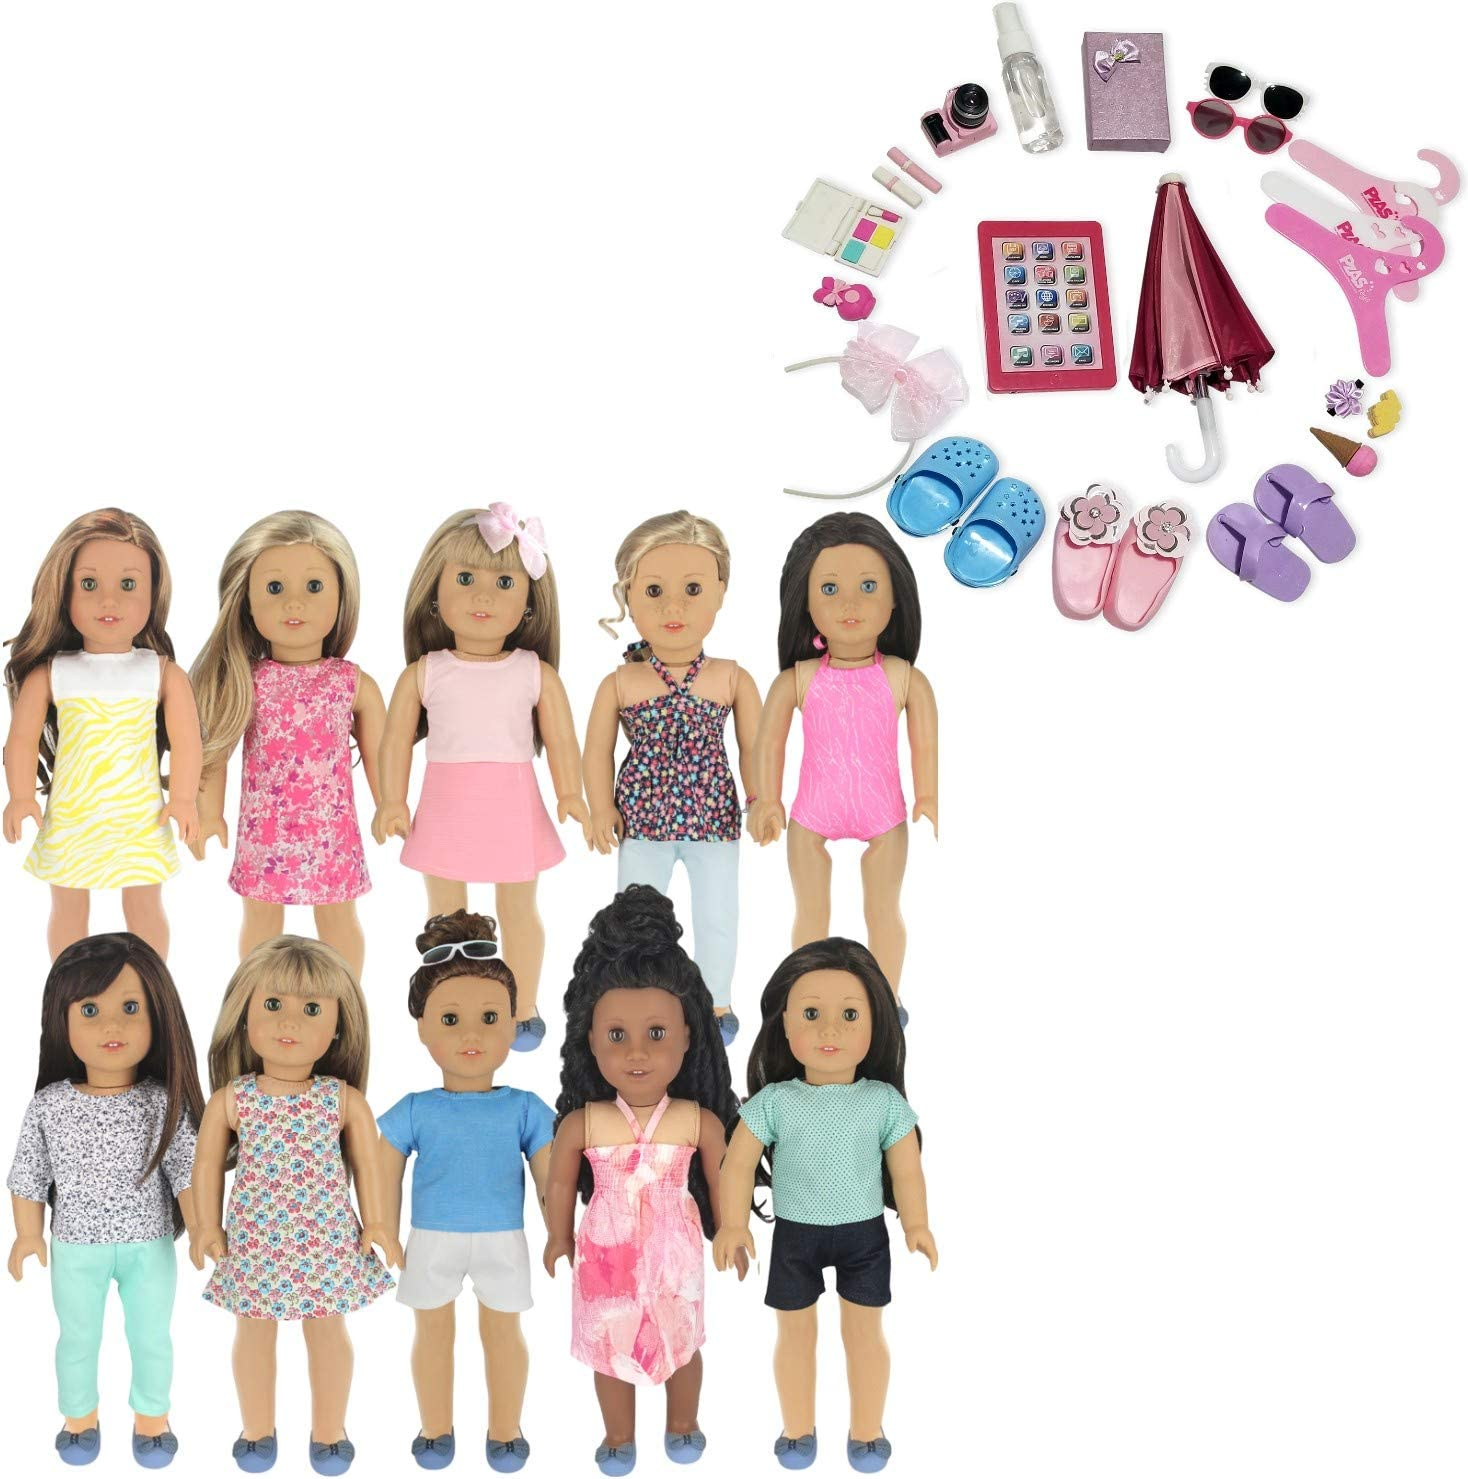 Doll Shoes Doll Umbrella Jewelry PZAS Toys Fits American Girl Doll Accessories 18 Doll Accessories 23 Piece Set Includes Doll iPad Camera Erasers and More!